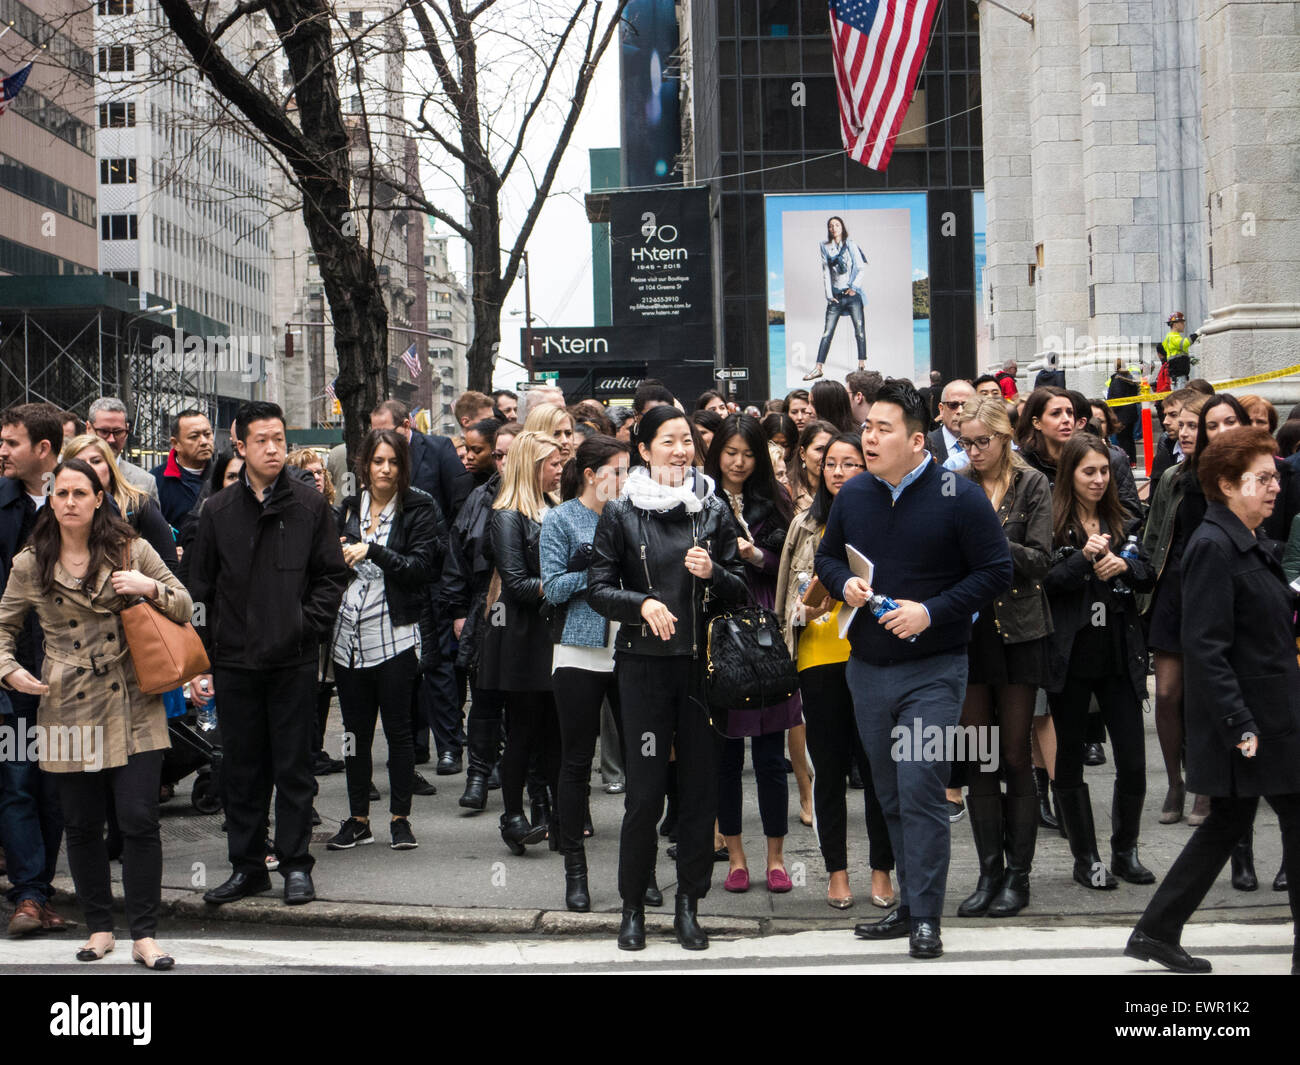 Crowed pavement on New Yorks Fifth Avenue Stock Photo